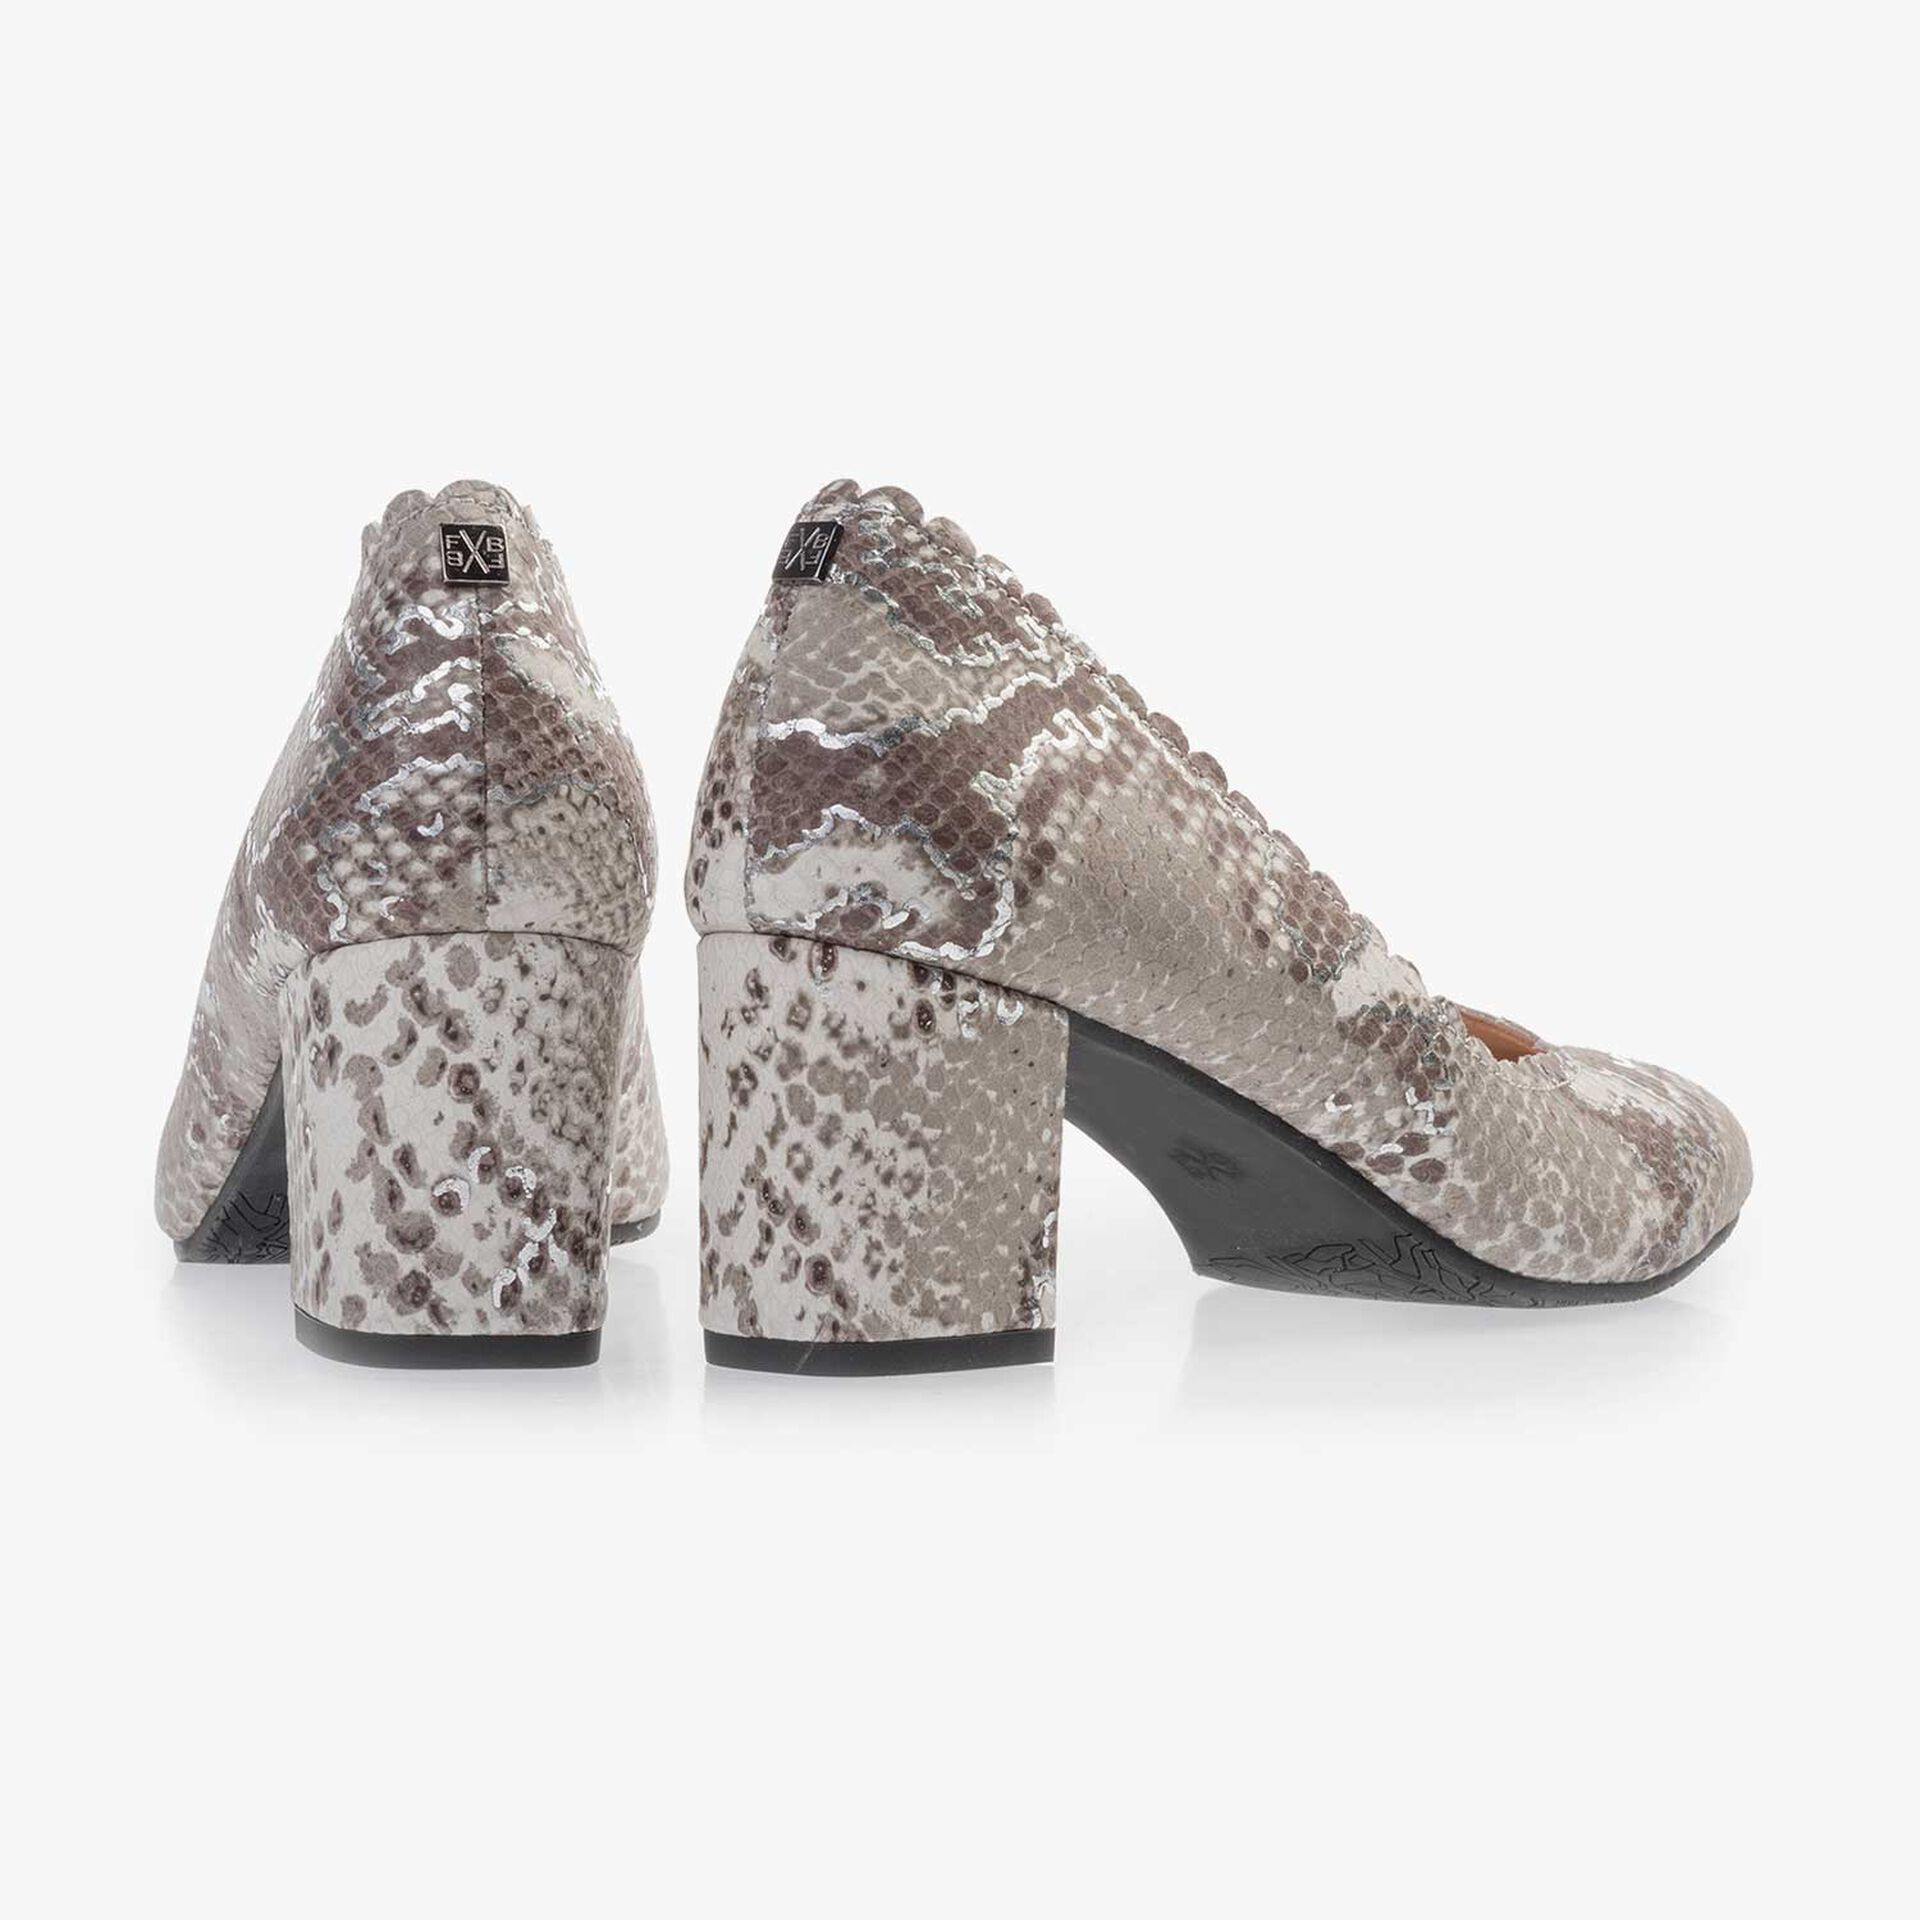 Taupe-coloured leather pumps with snake print